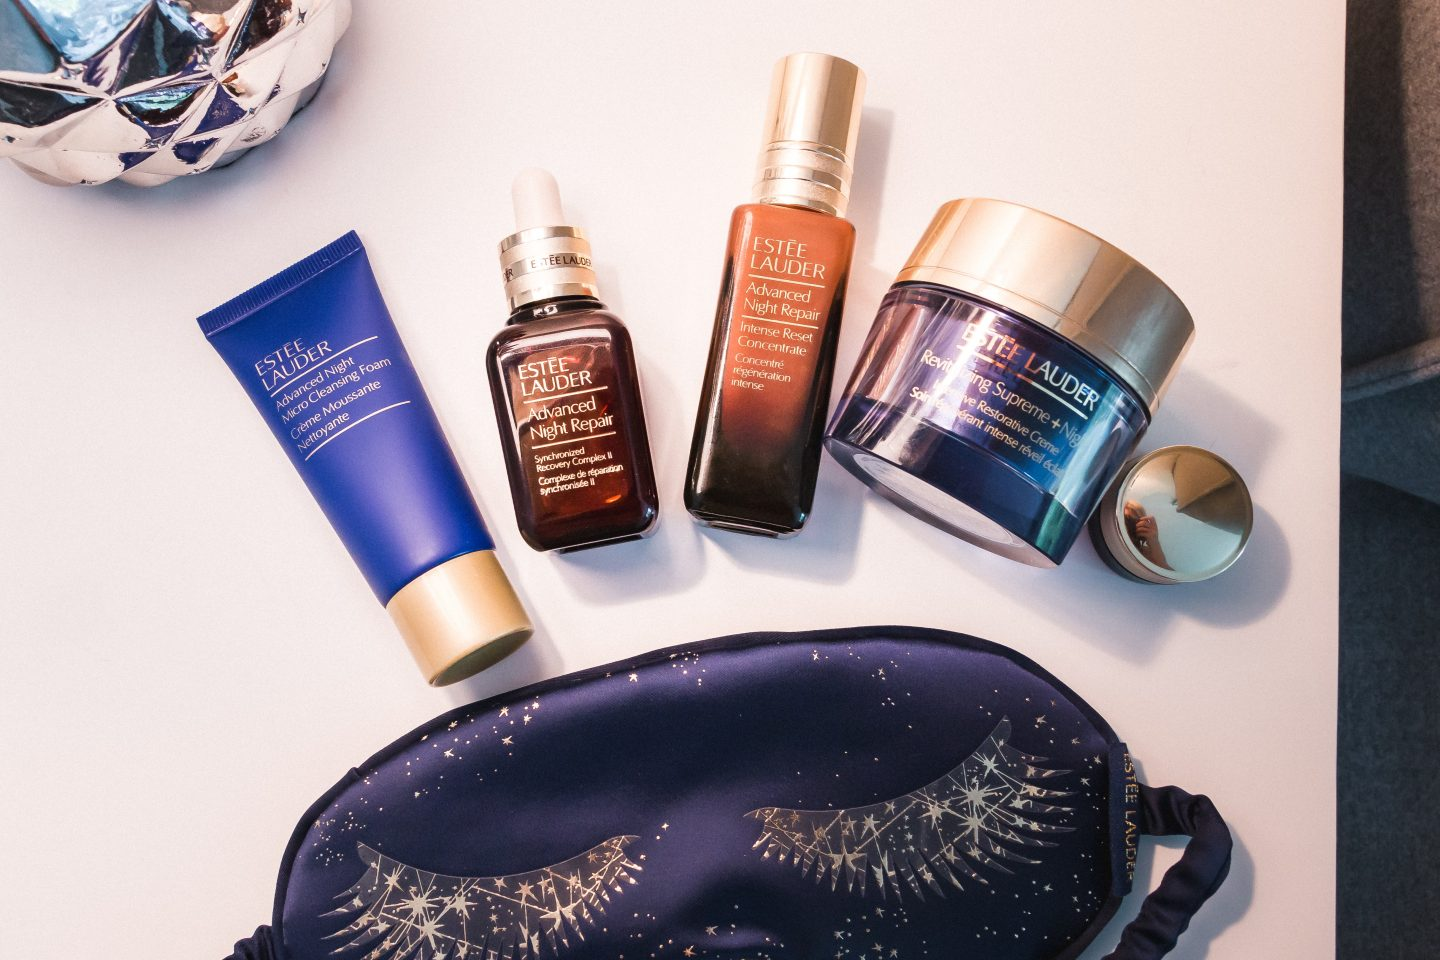 Estée Lauder – The night is yours Produkte